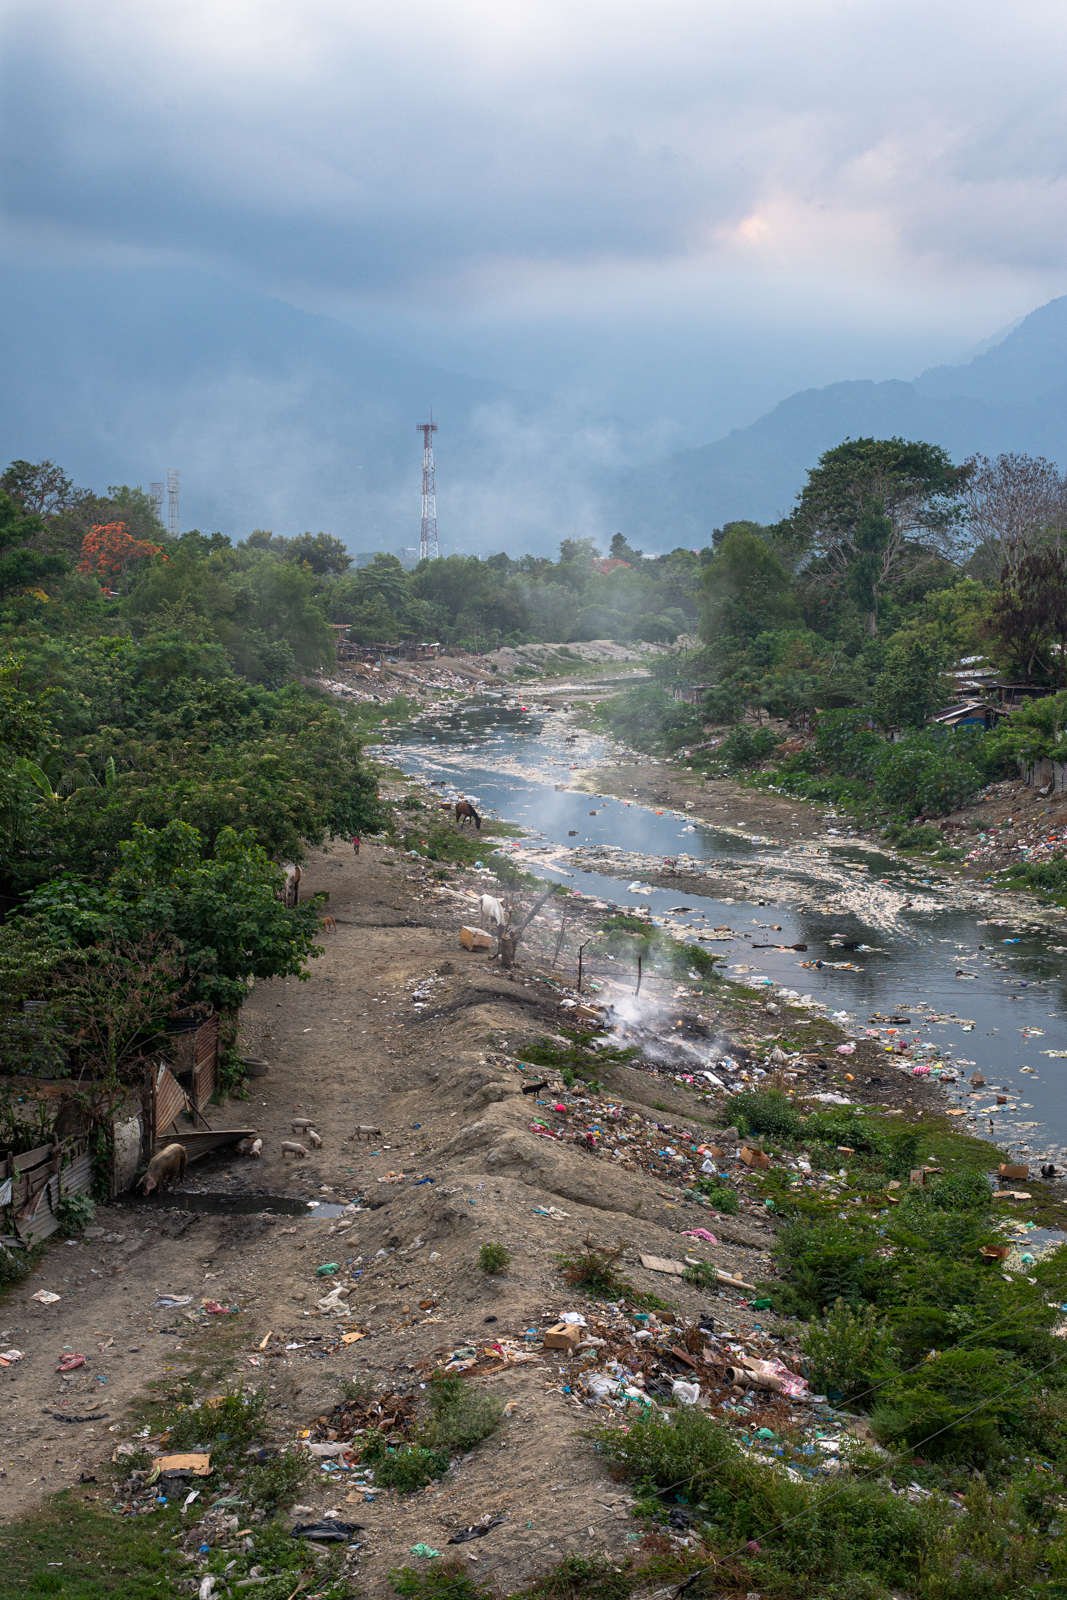 """Sadly, this is the state of many river systems inside populated areas of Honduras. Trash dumping is a rampant issue, that doesn't seem to be improving, especially along the rivers where the country's poorest people live in makeshift shanties, what locals call """"Los Bordos""""--The Edge."""